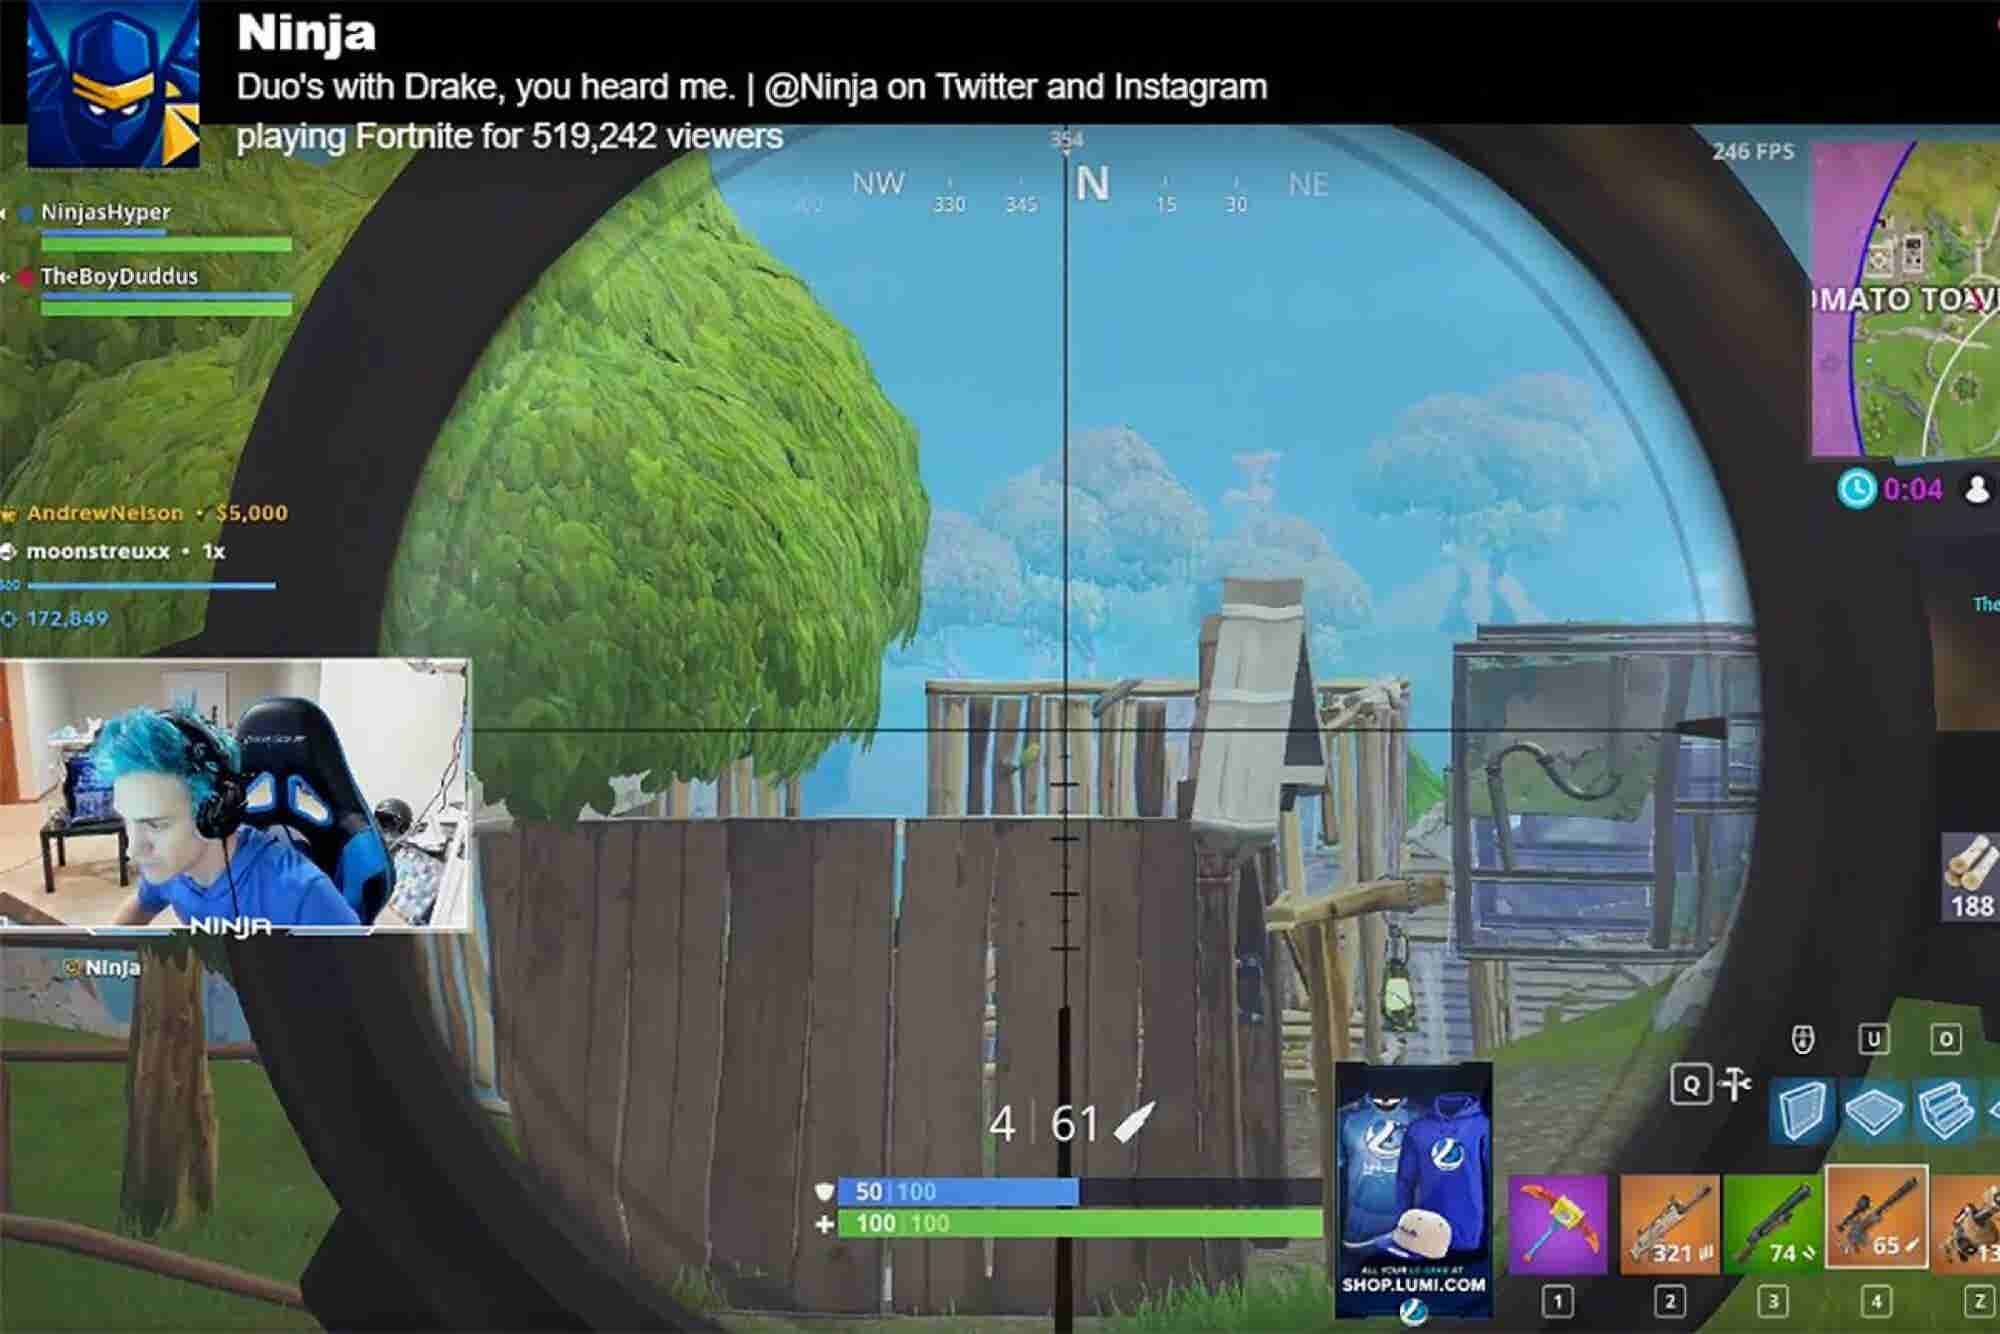 Highly Paid 'Fortnite' Streamer Breaks Twitch Records With Help From Drake